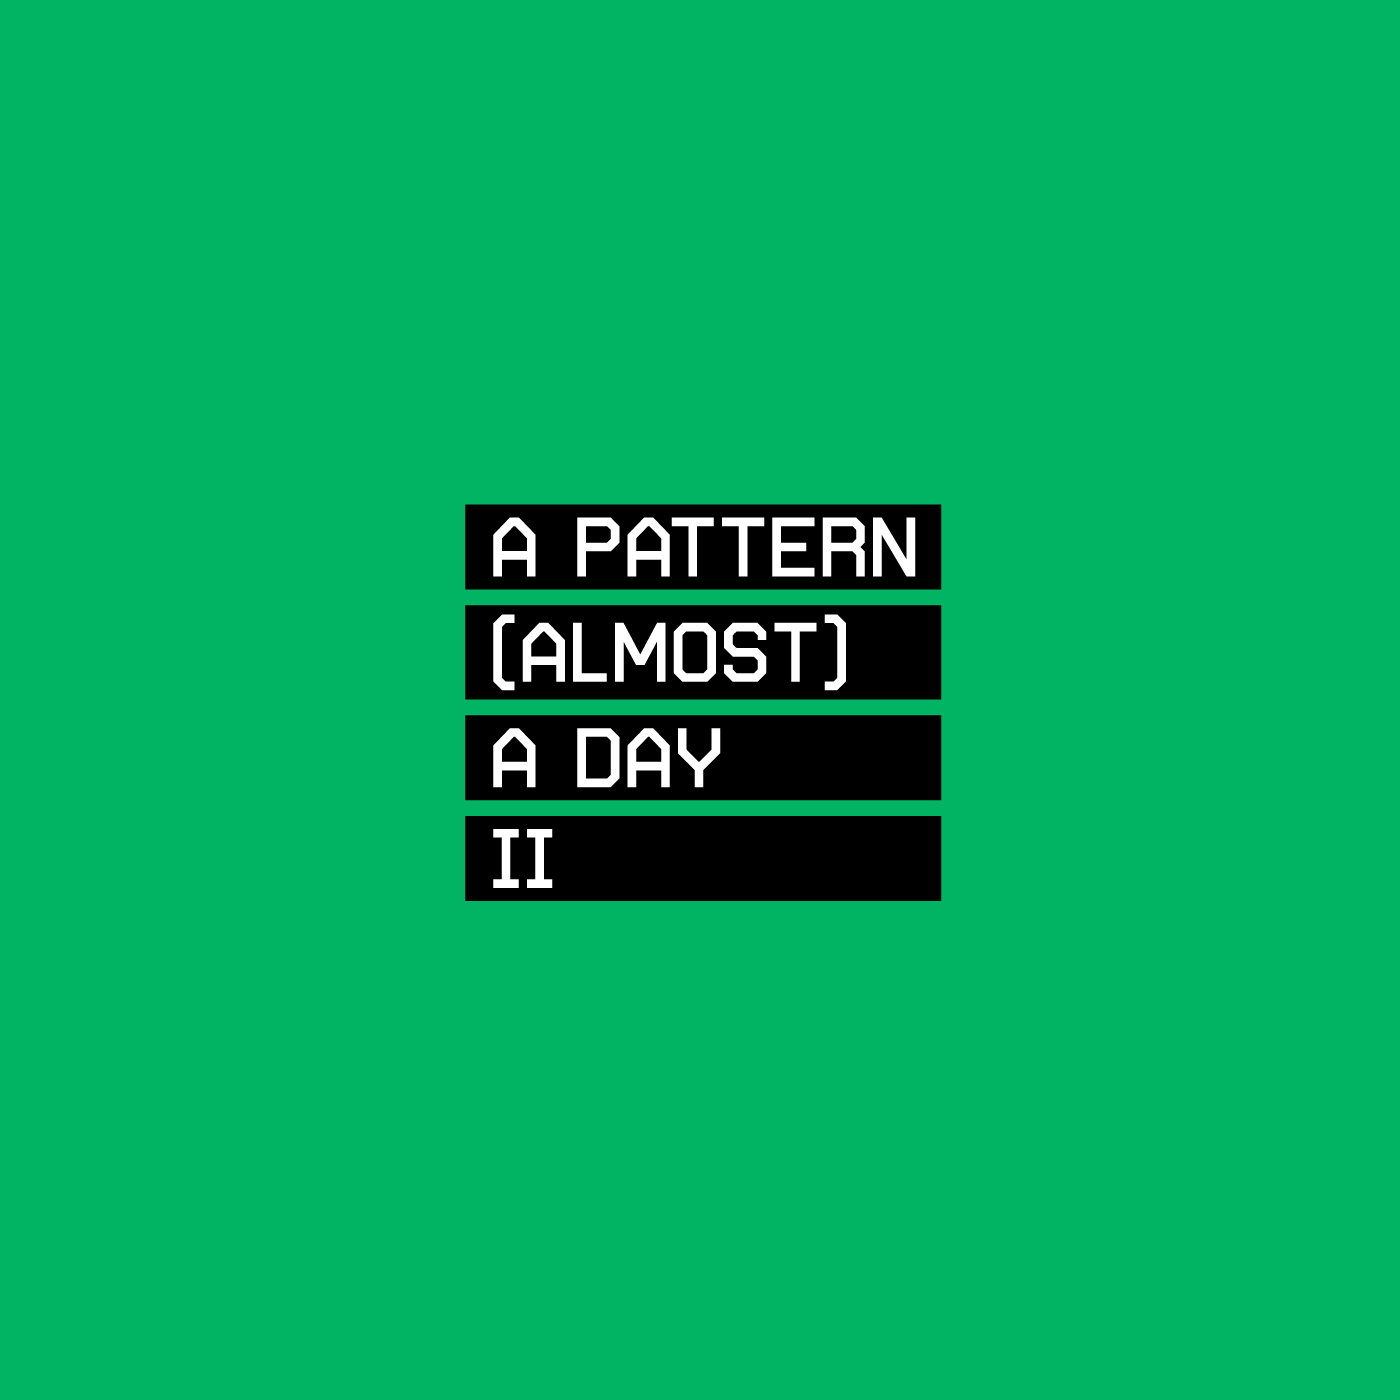 a-pattern-a-day-logo-1,2